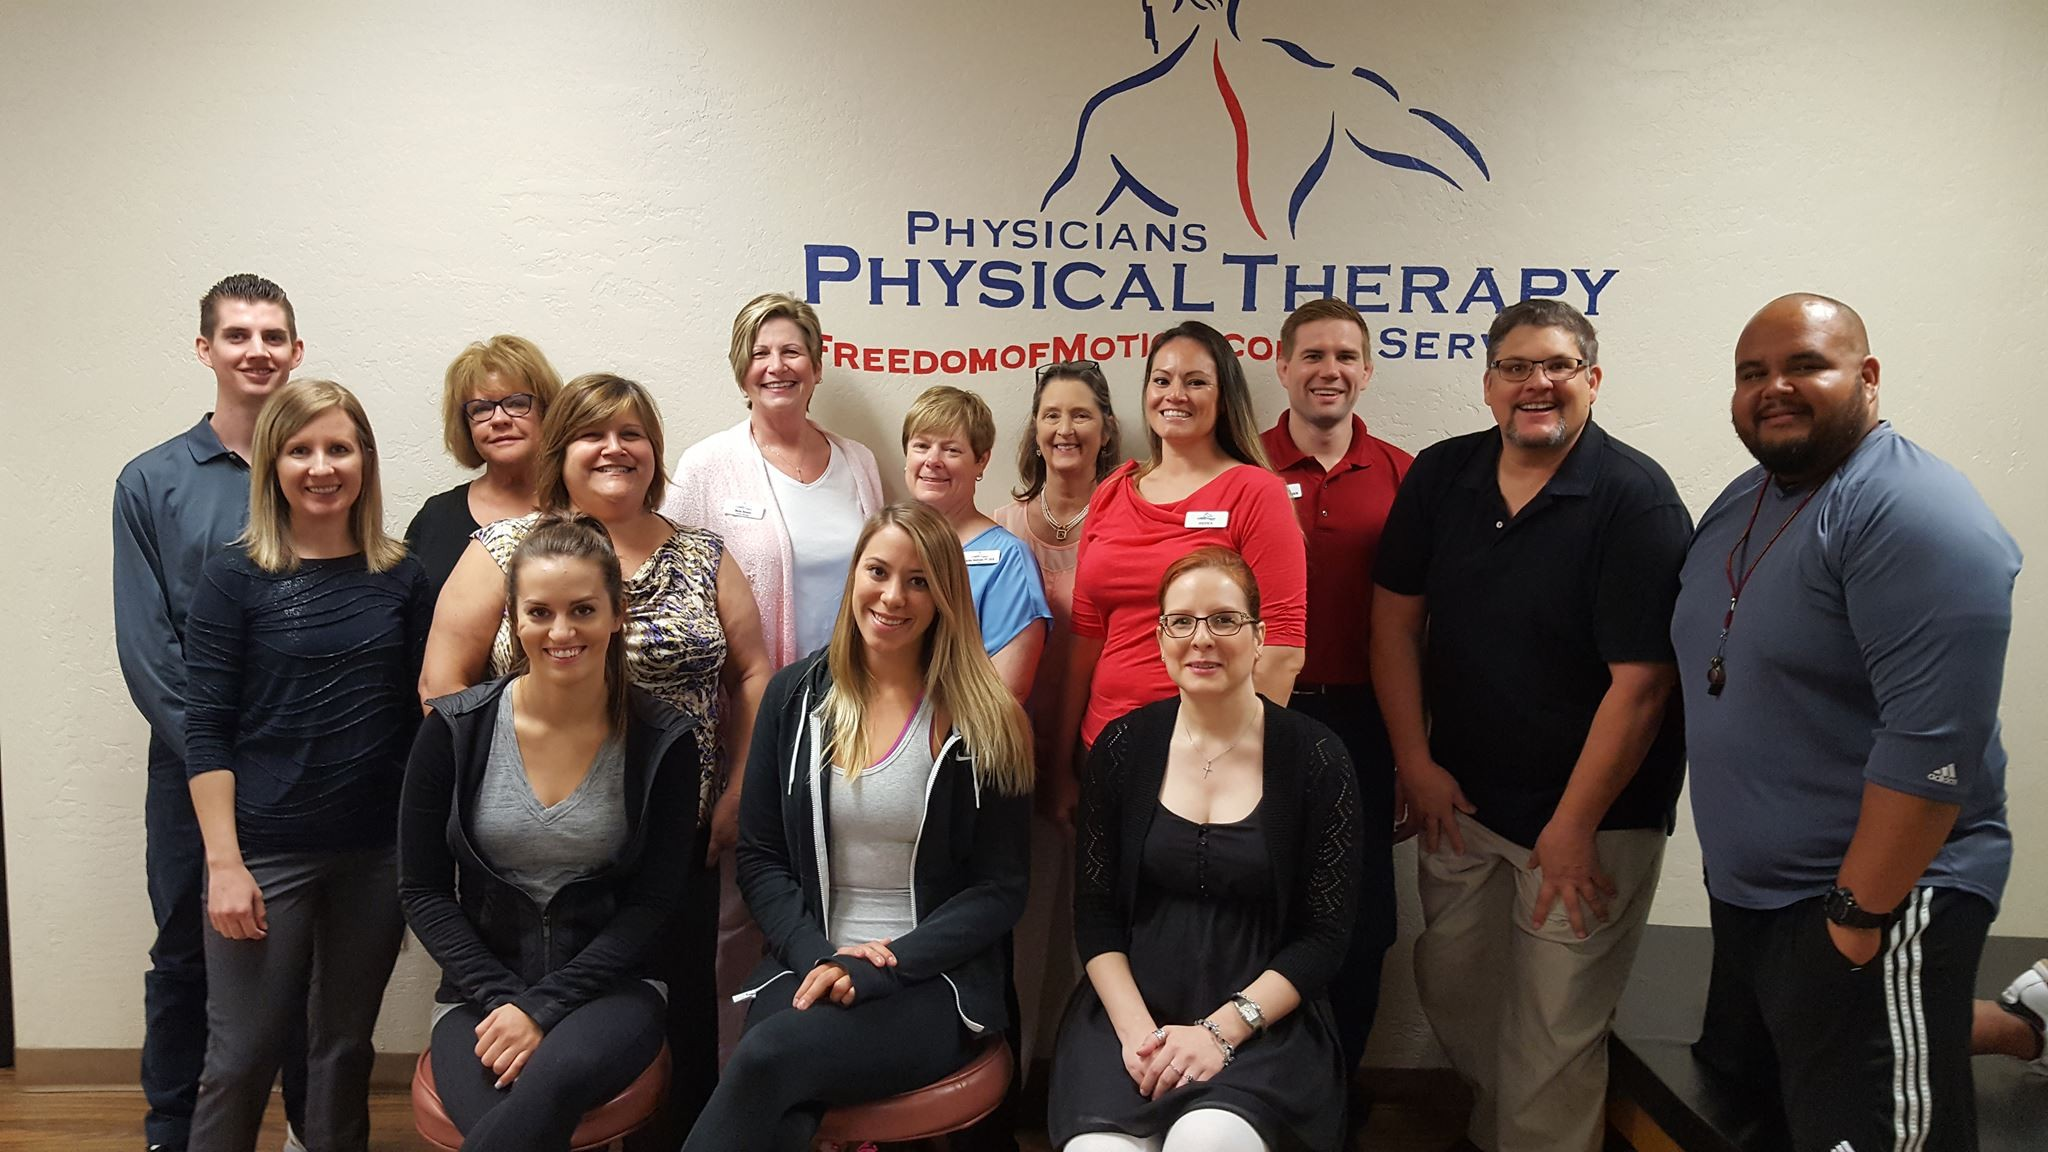 Physicians Physical Therapy Service | LinkedIn